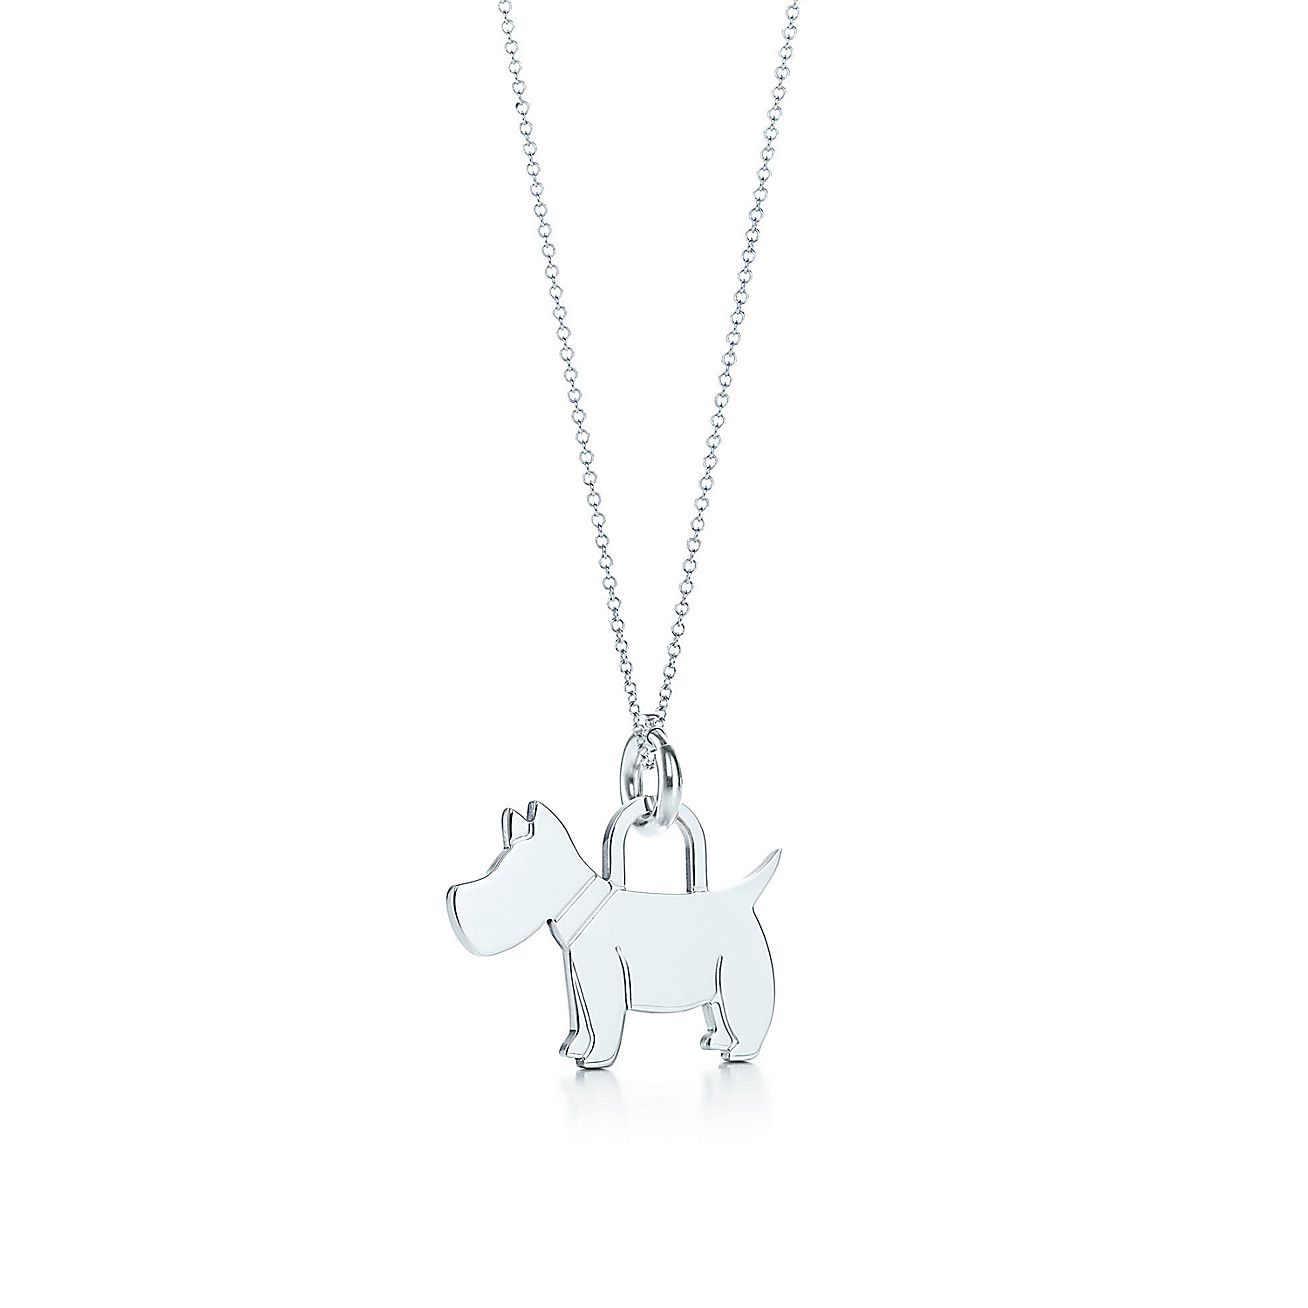 Scottie<br>tag charm and chain